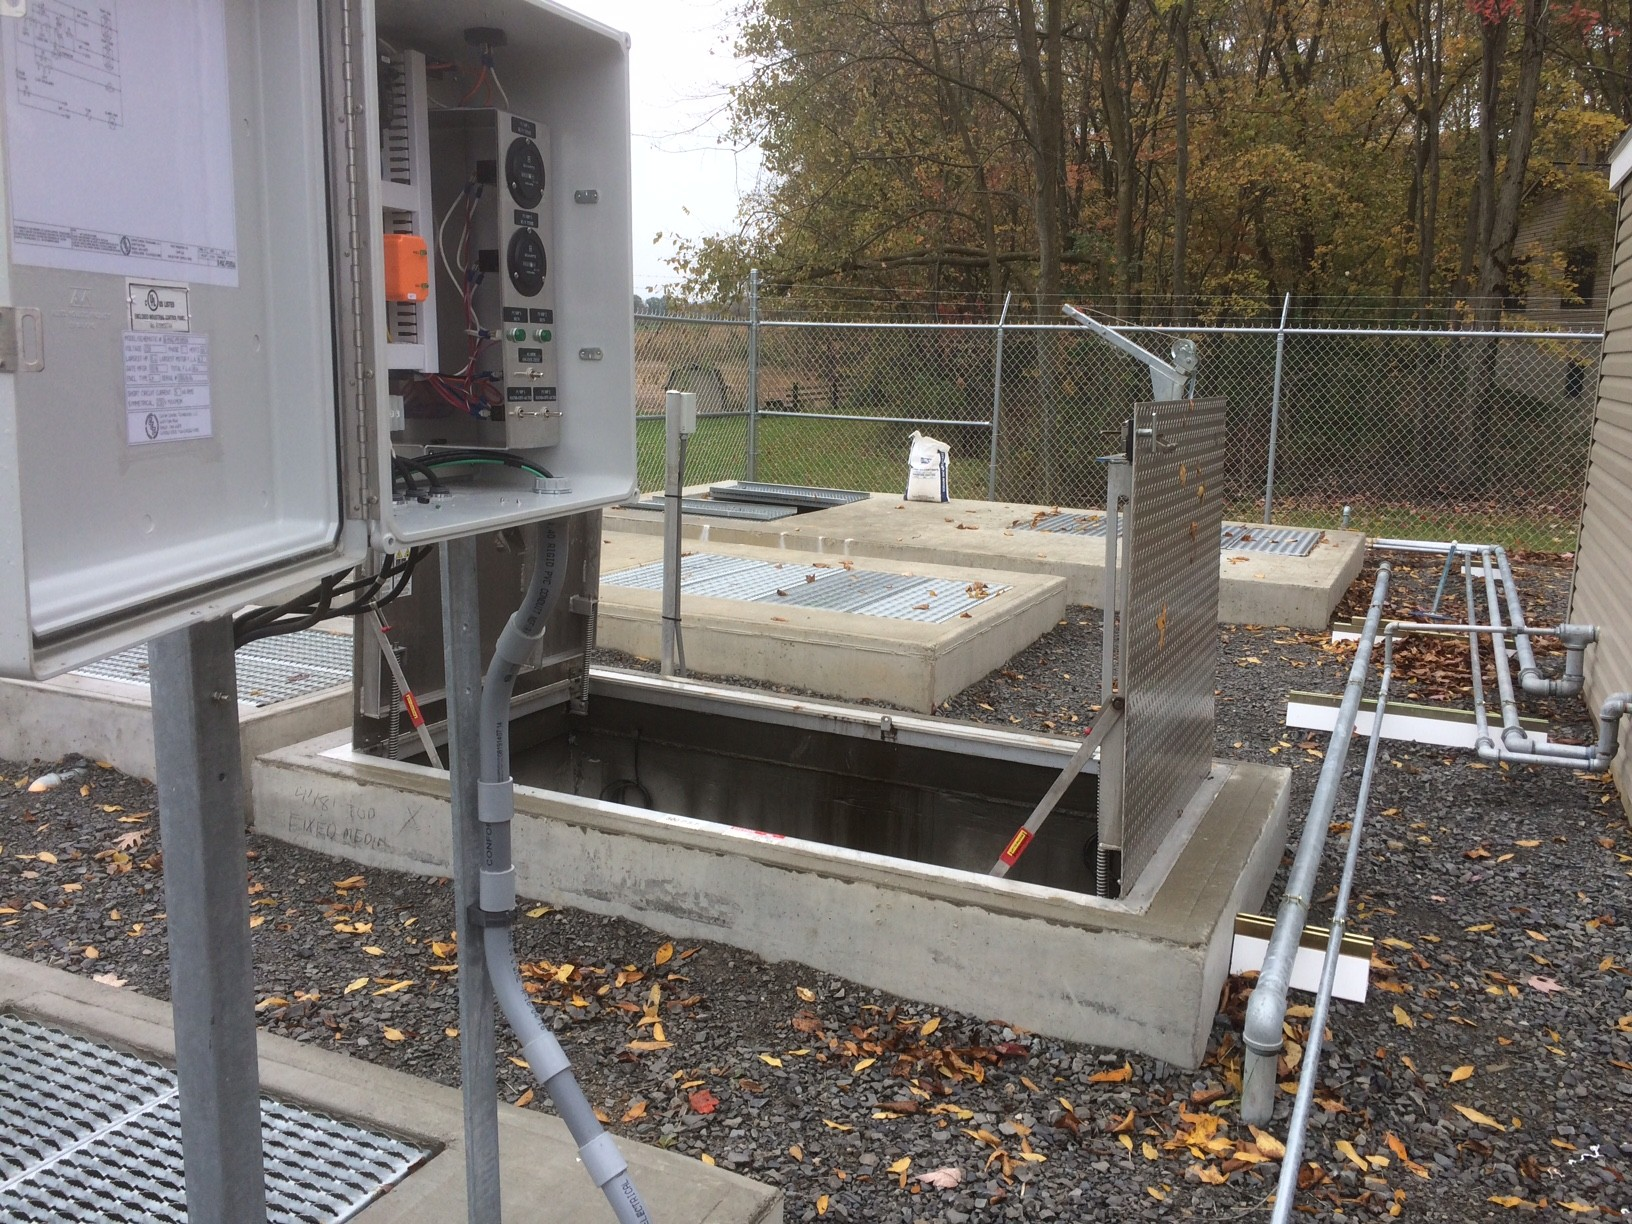 Commercial Septic System-Savannah Septic Tank Services, Installation, & Repairs-We offer Septic Service & Repairs, Septic Tank Installations, Septic Tank Cleaning, Commercial, Septic System, Drain Cleaning, Line Snaking, Portable Toilet, Grease Trap Pumping & Cleaning, Septic Tank Pumping, Sewage Pump, Sewer Line Repair, Septic Tank Replacement, Septic Maintenance, Sewer Line Replacement, Porta Potty Rentals